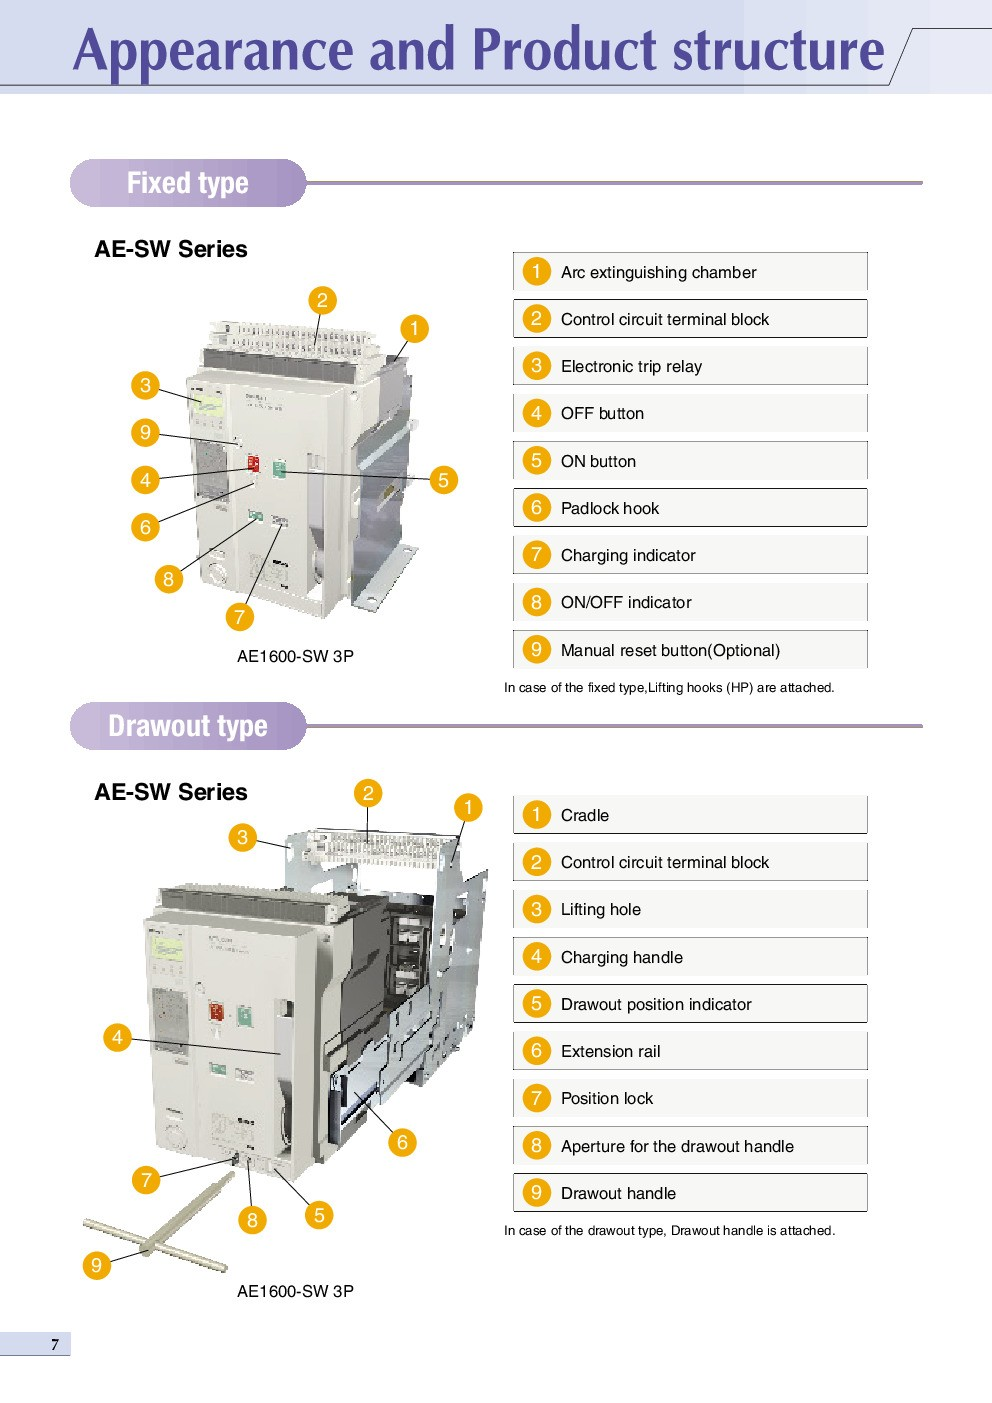 ACCESSORIES PANEL & BOX PANEL, LOW VOLTAGE AIR CIRCUIT BREAKER MITSUBISHI, Appearance and Product Structure